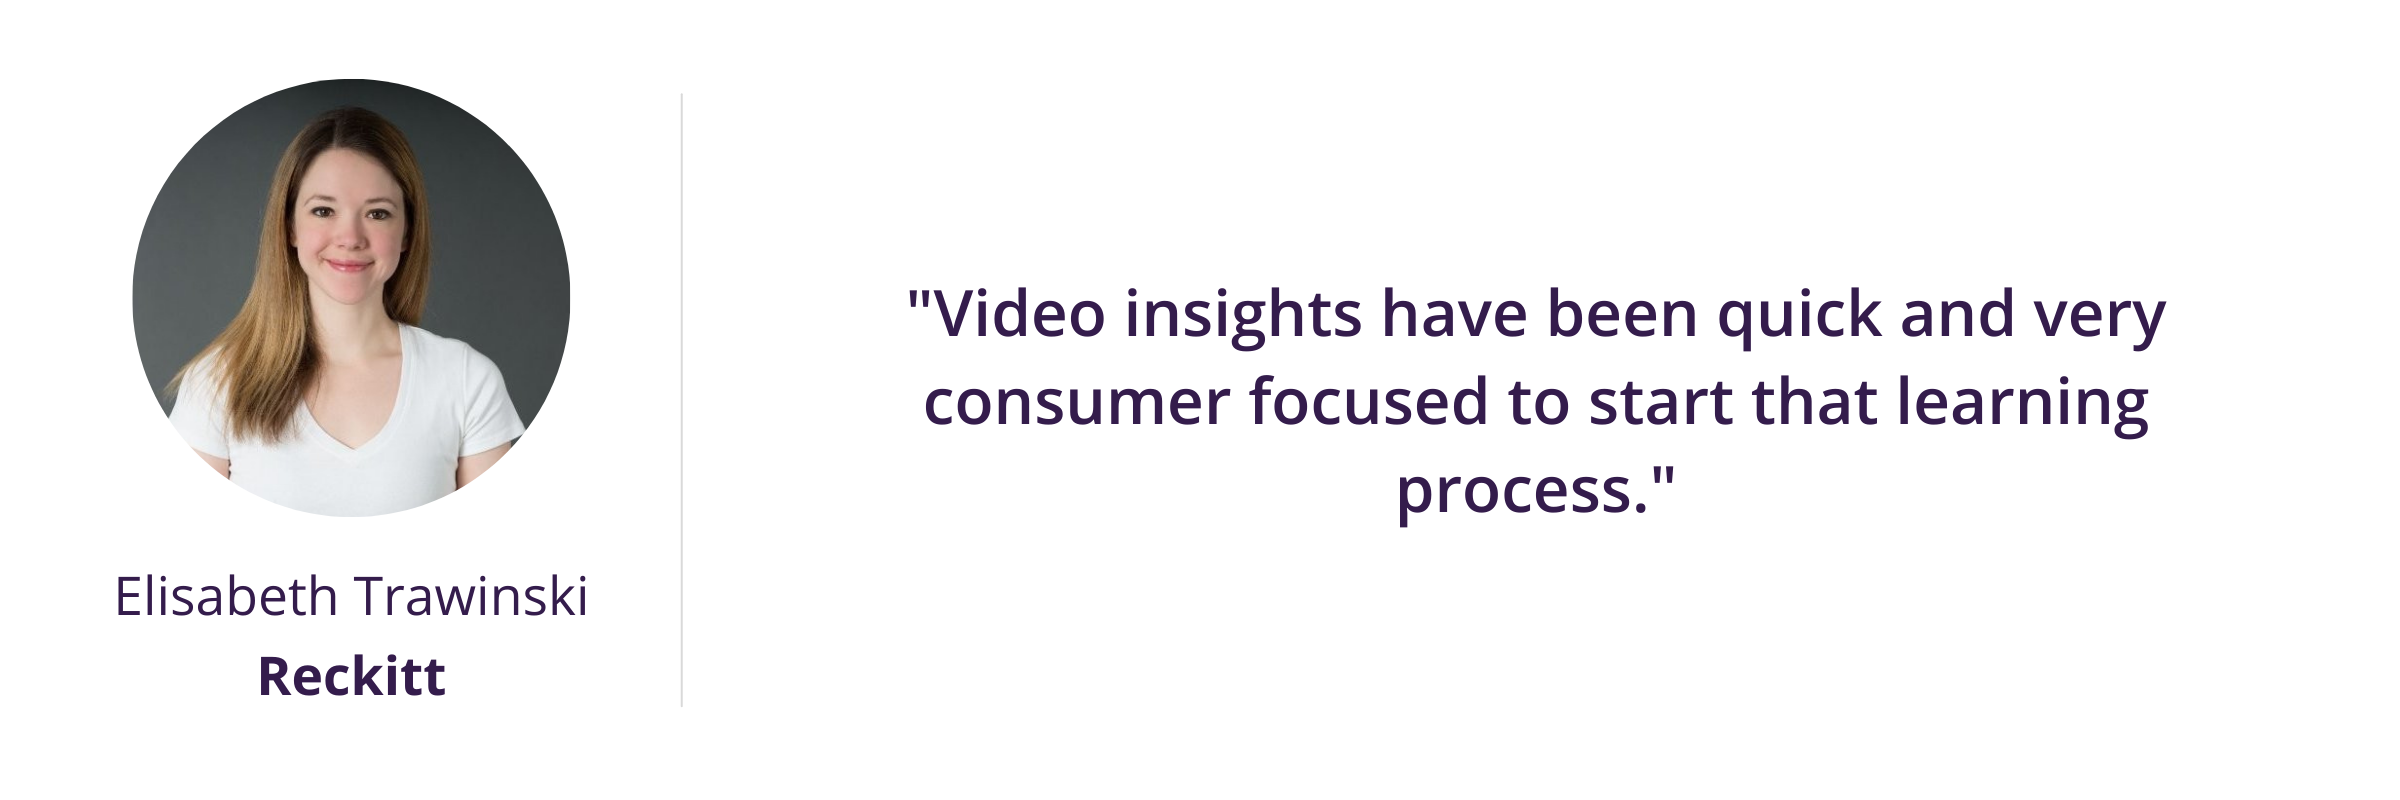 Video insights have been quick and very consumer focused to start that learning process.